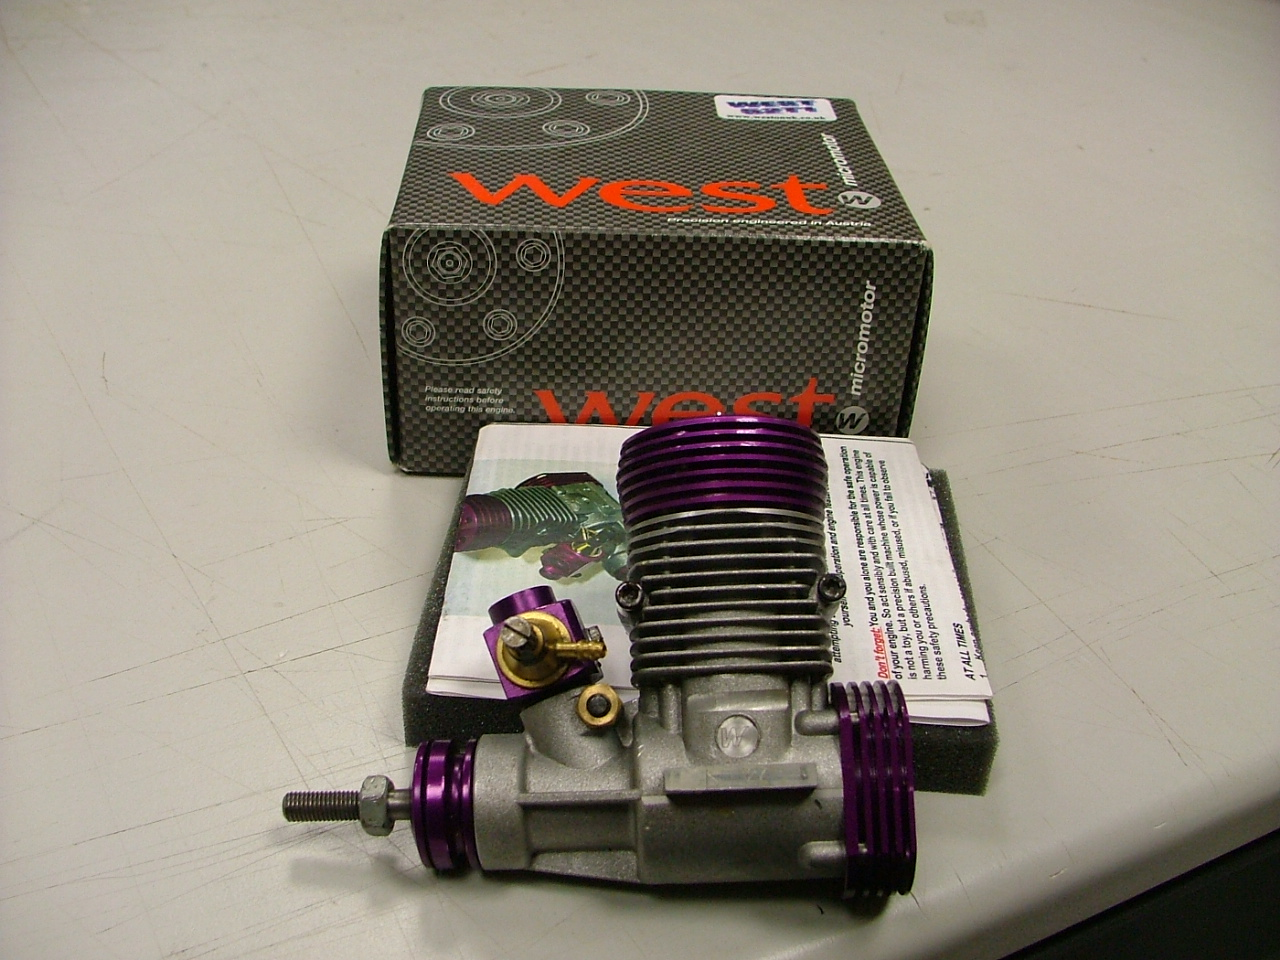 s/h AS NEW WEST 52 TI BOXED NEVER RUN..